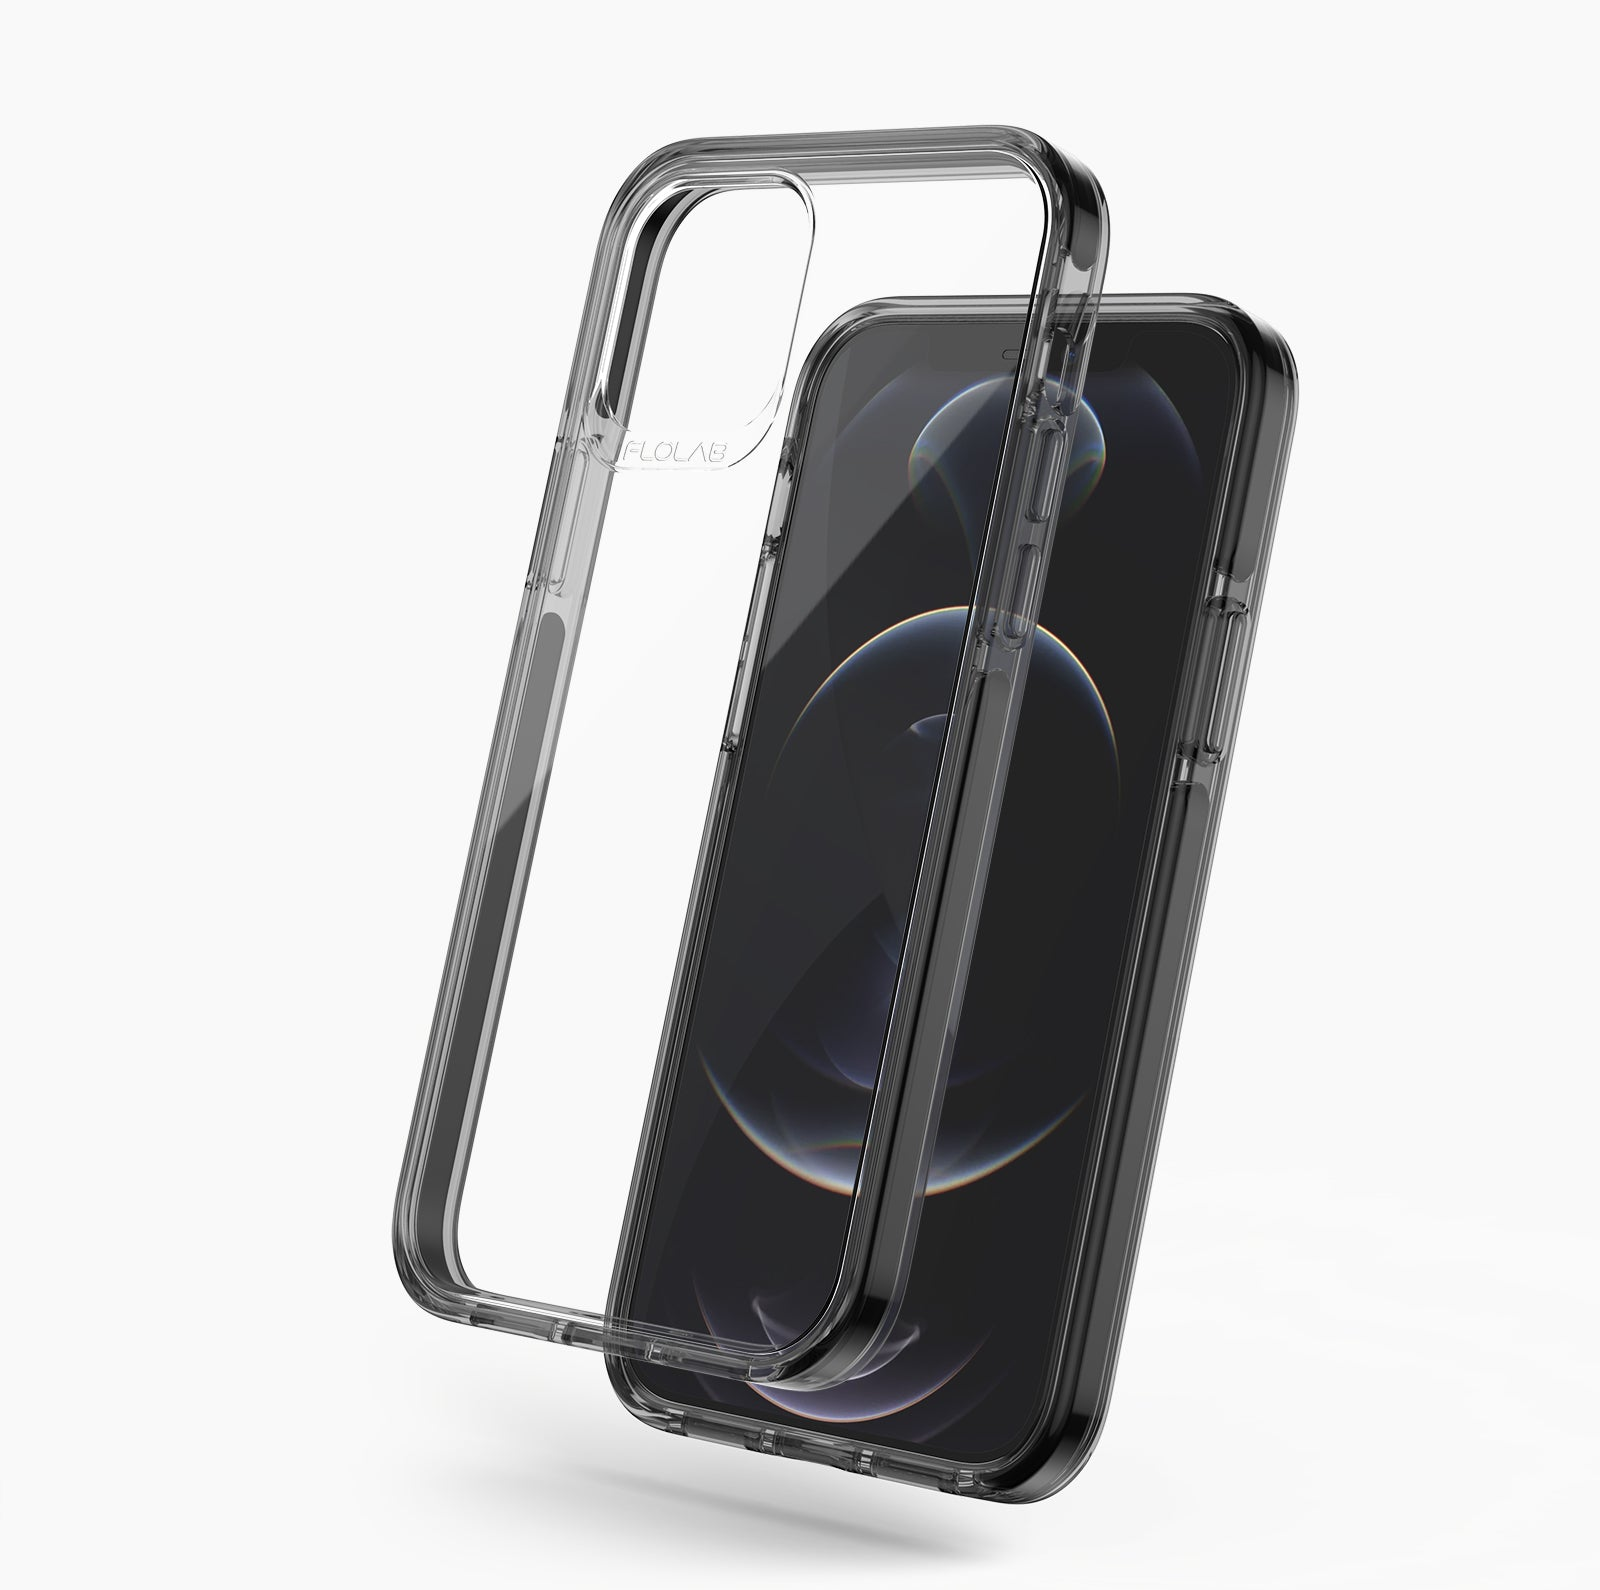 Black Clear iPhone 12 Pro Max Cases TAFFYCA Series *Ships November 1st*